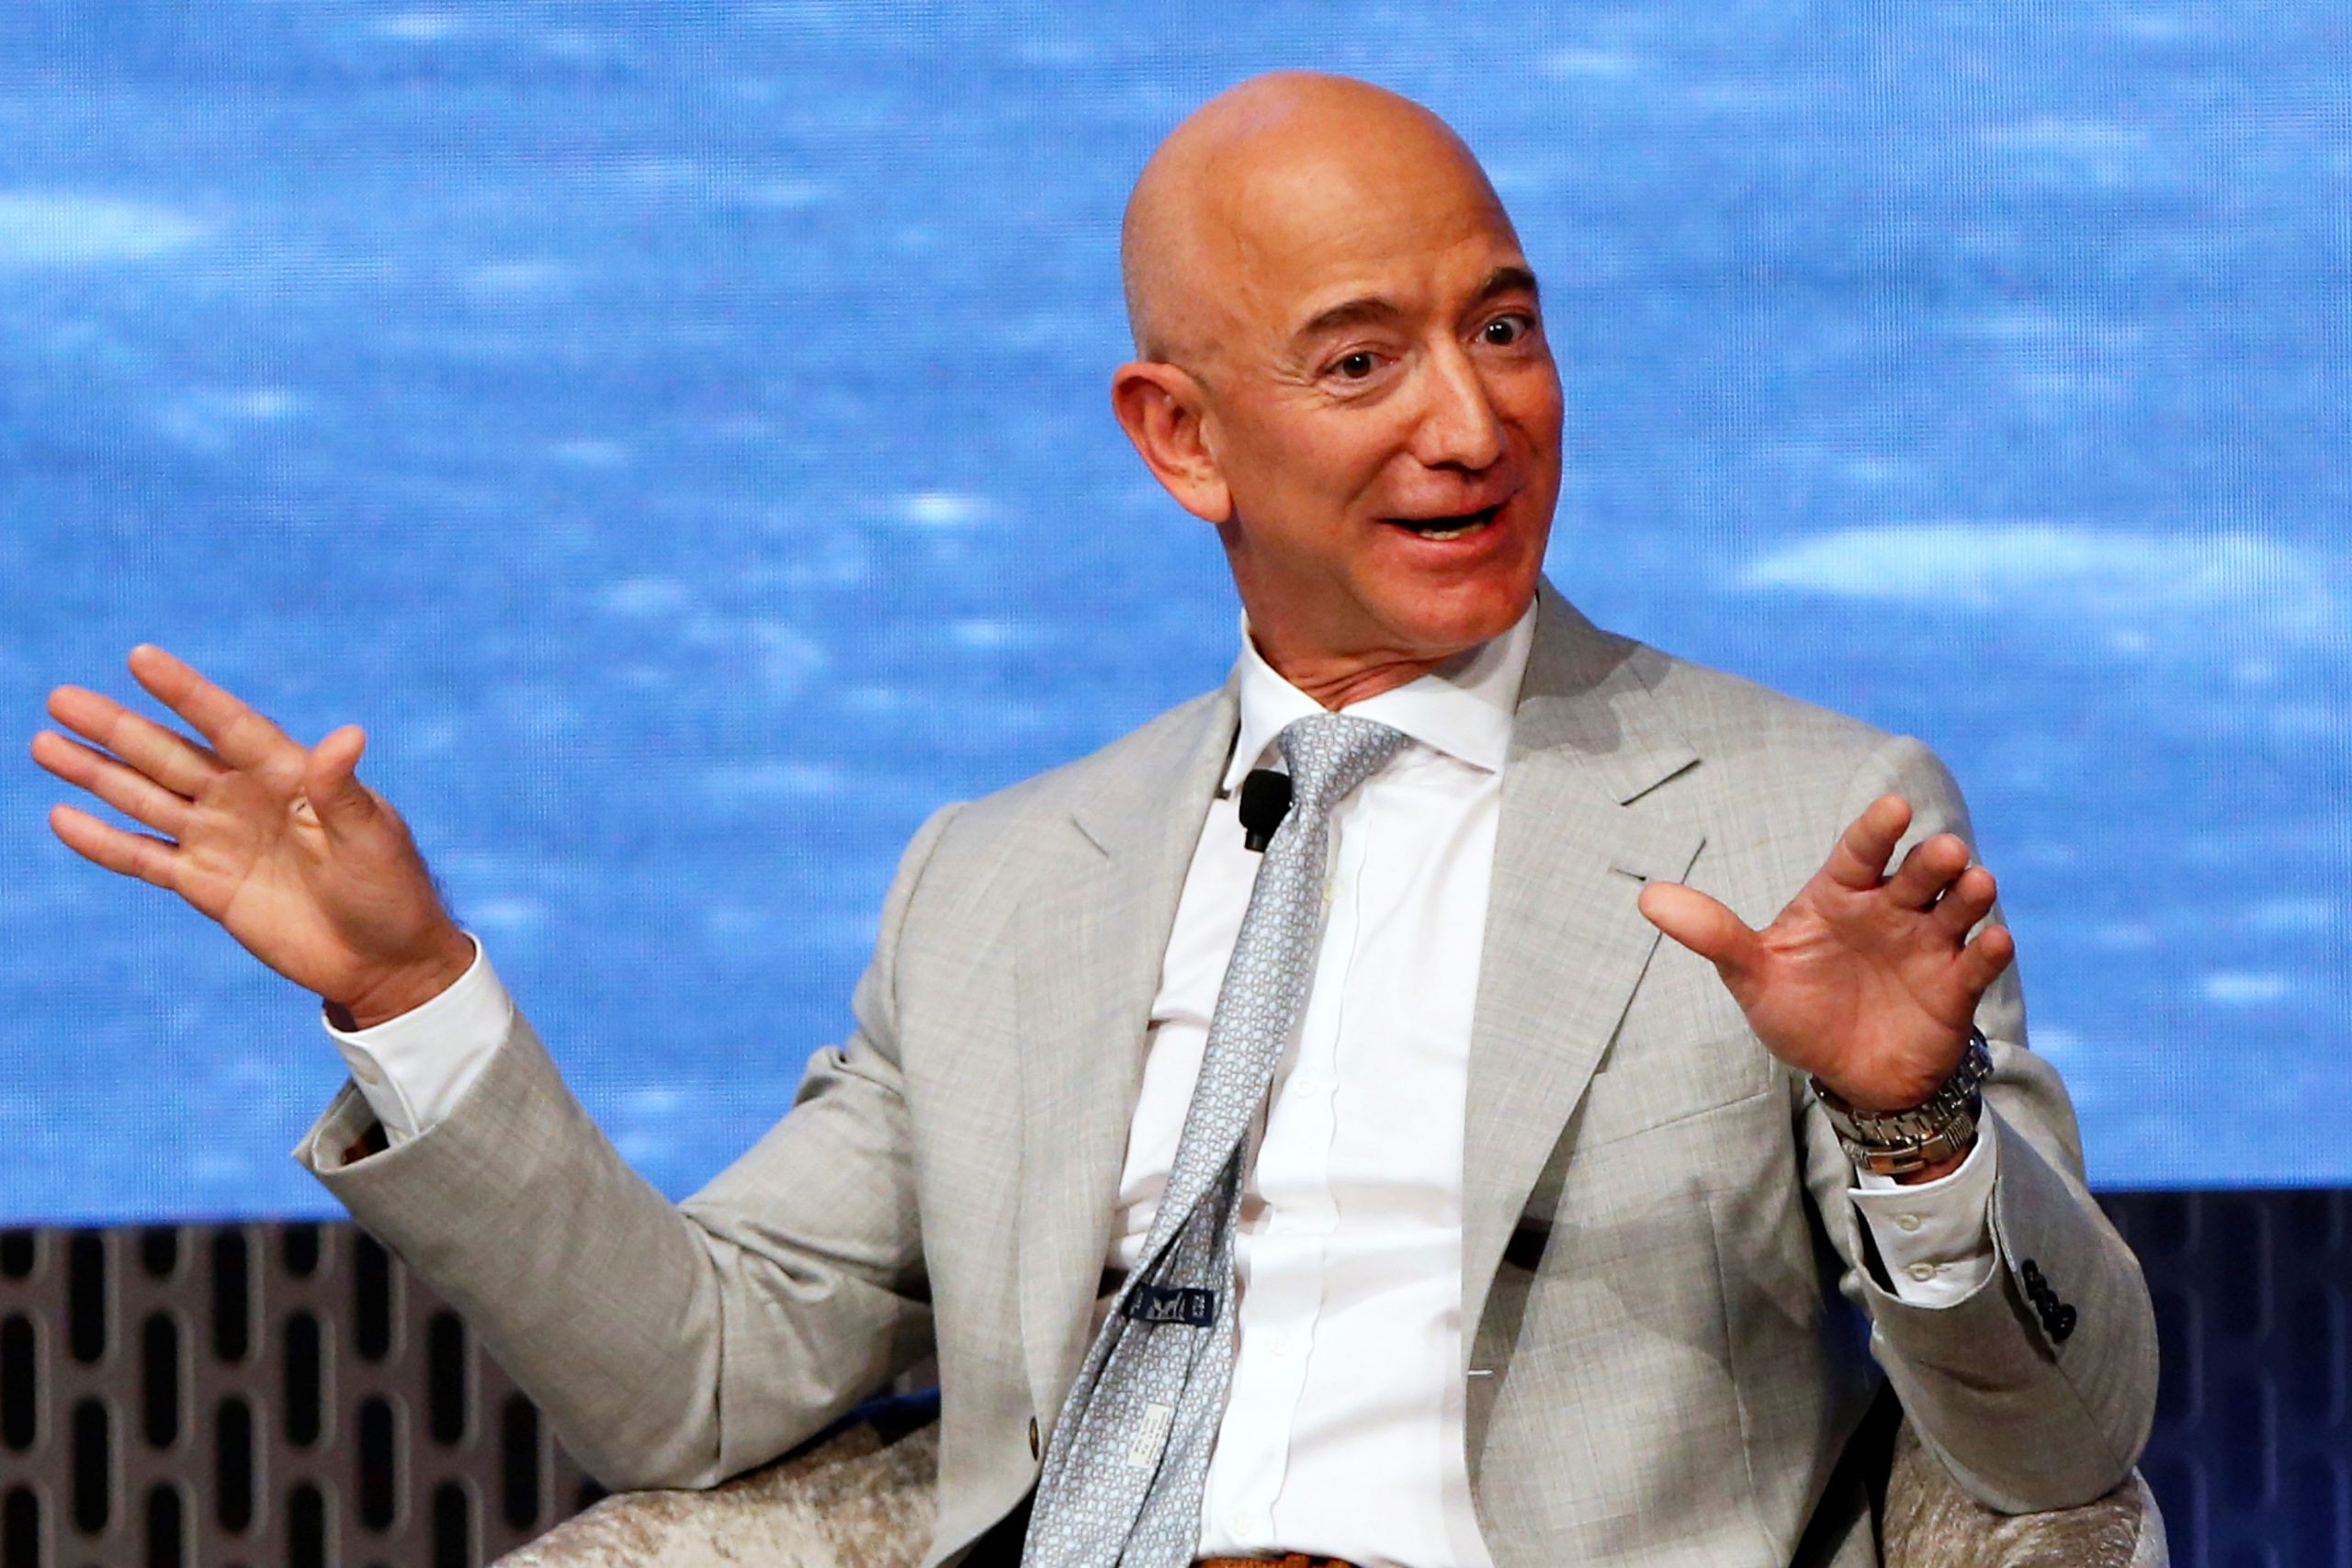 Stocks making the biggest moves after hours: Amazon, Visa, Navistar and more